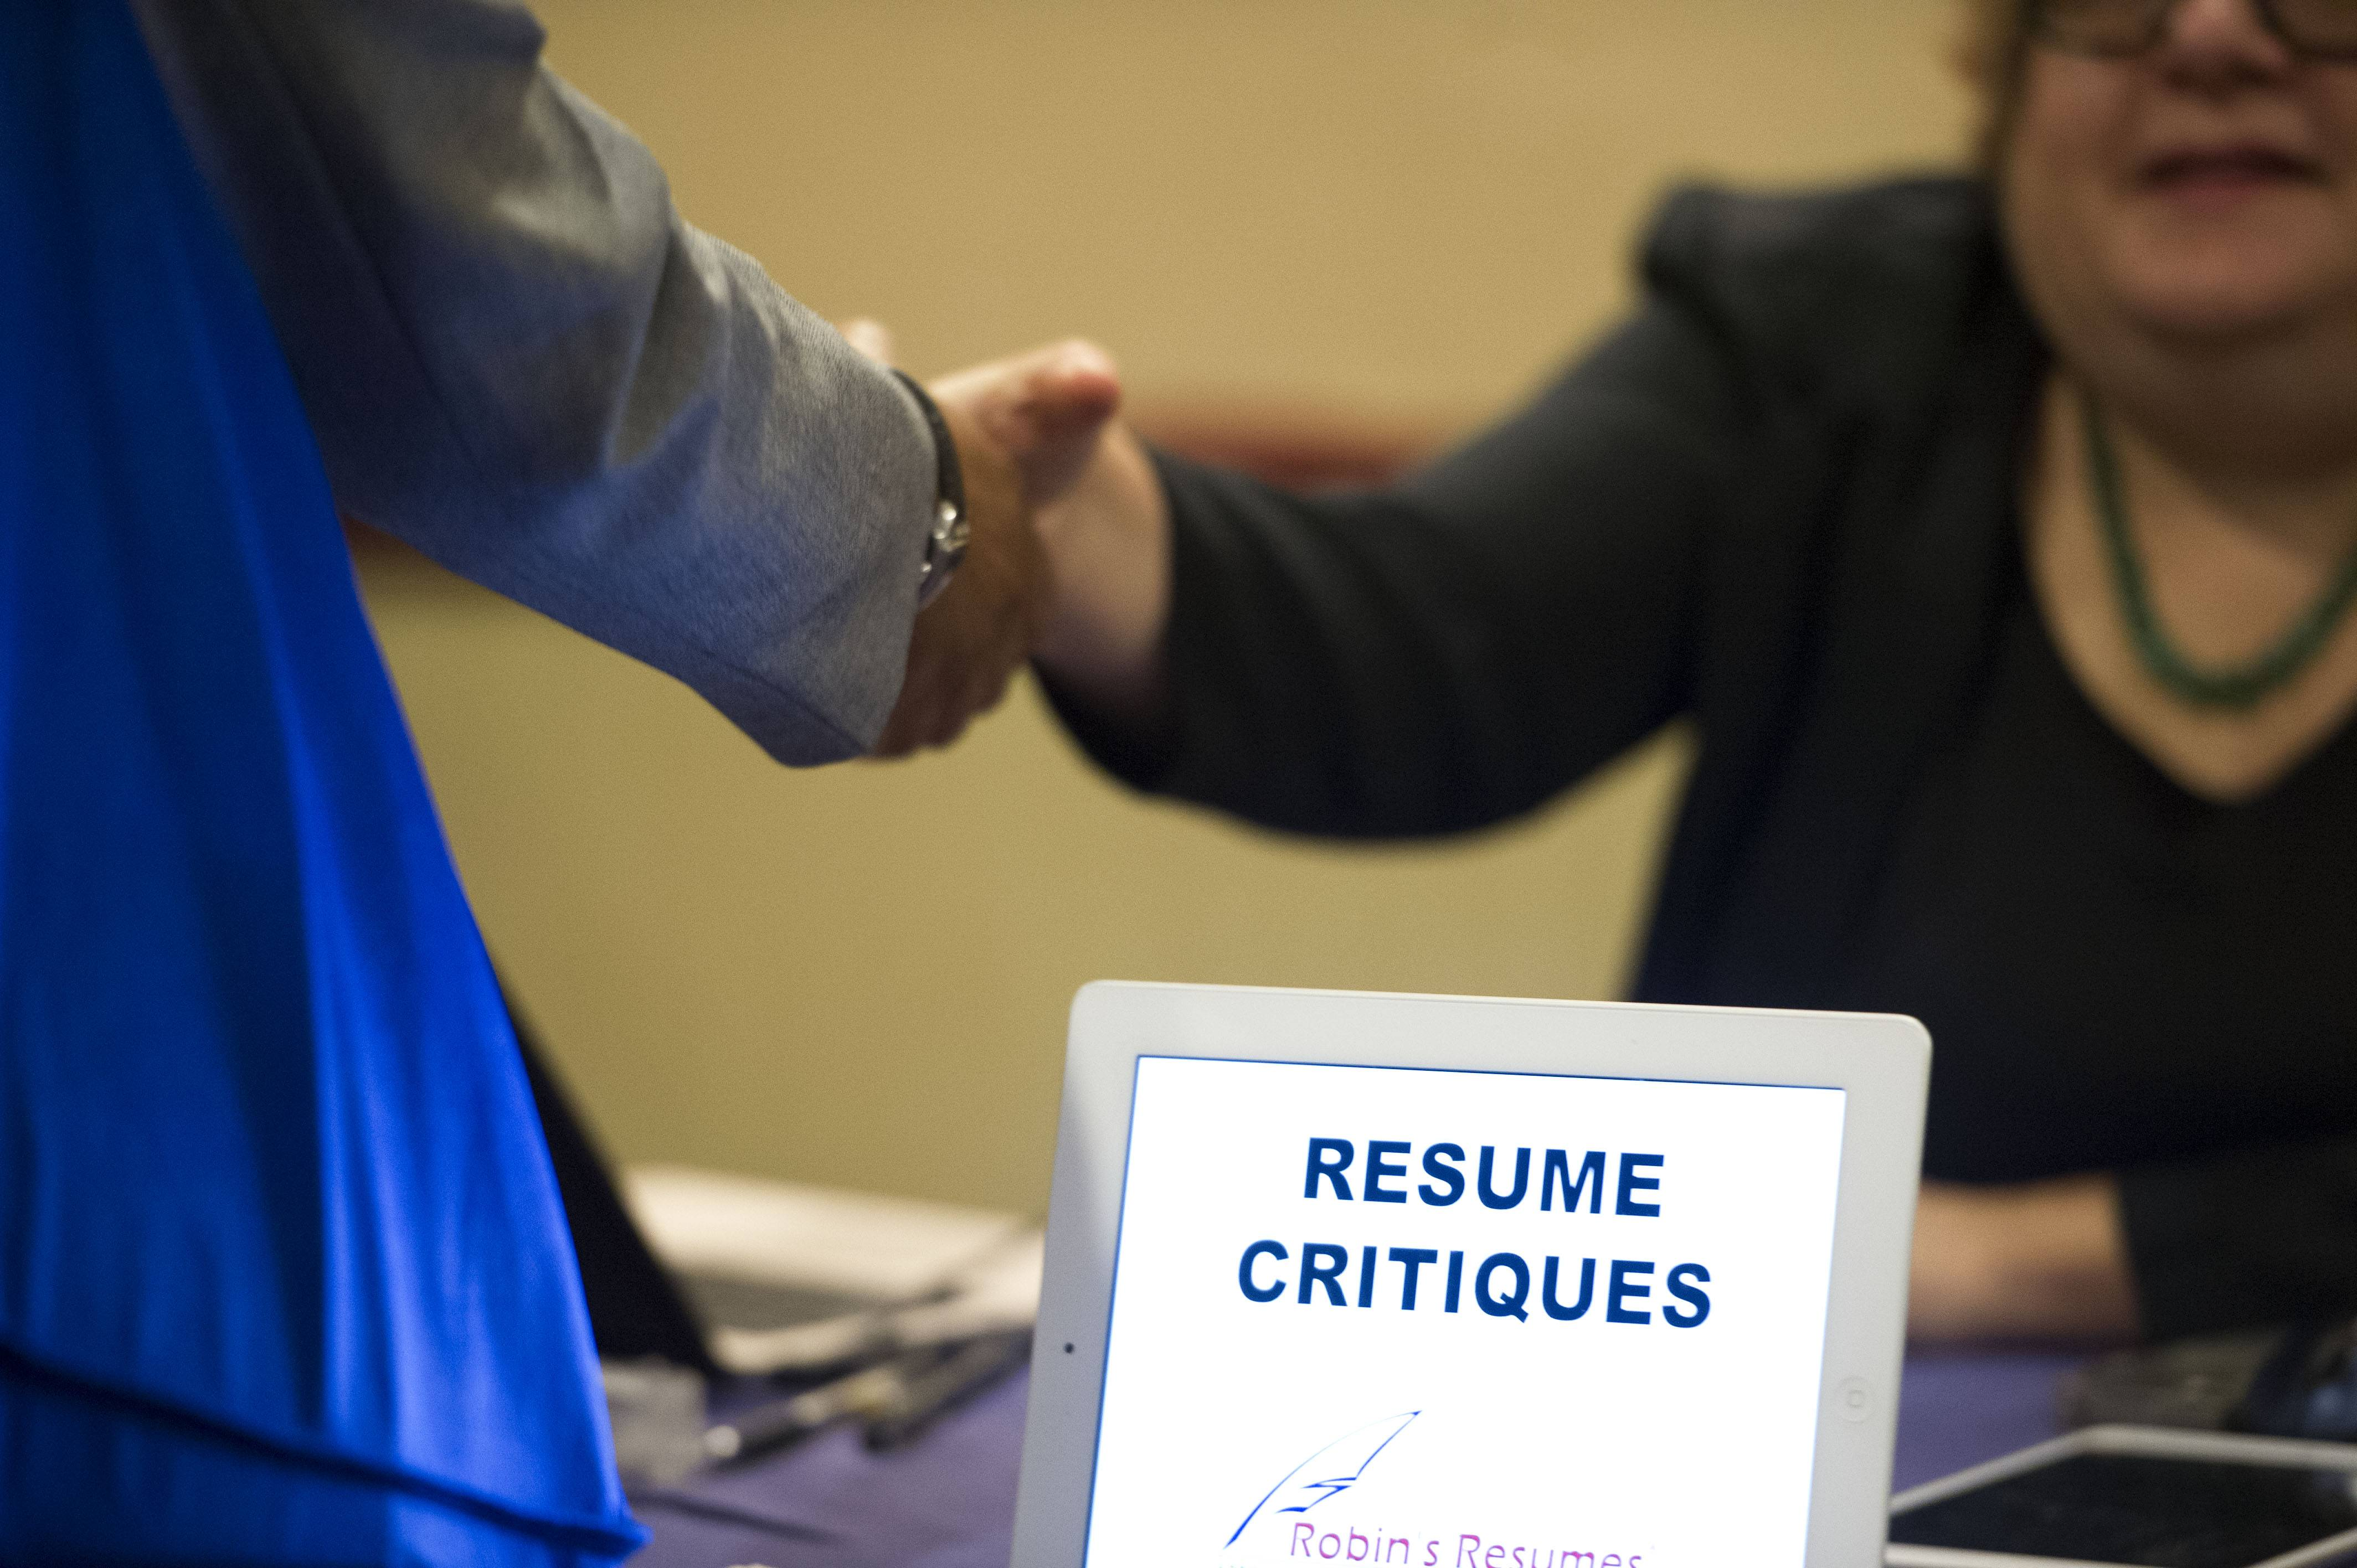 The number of people seeking U.S. unemployment benefits last week rose 2,000 to a seasonally adjusted 304,000. Jobless claims continue to be near pre-recession levels despite the slight increase.